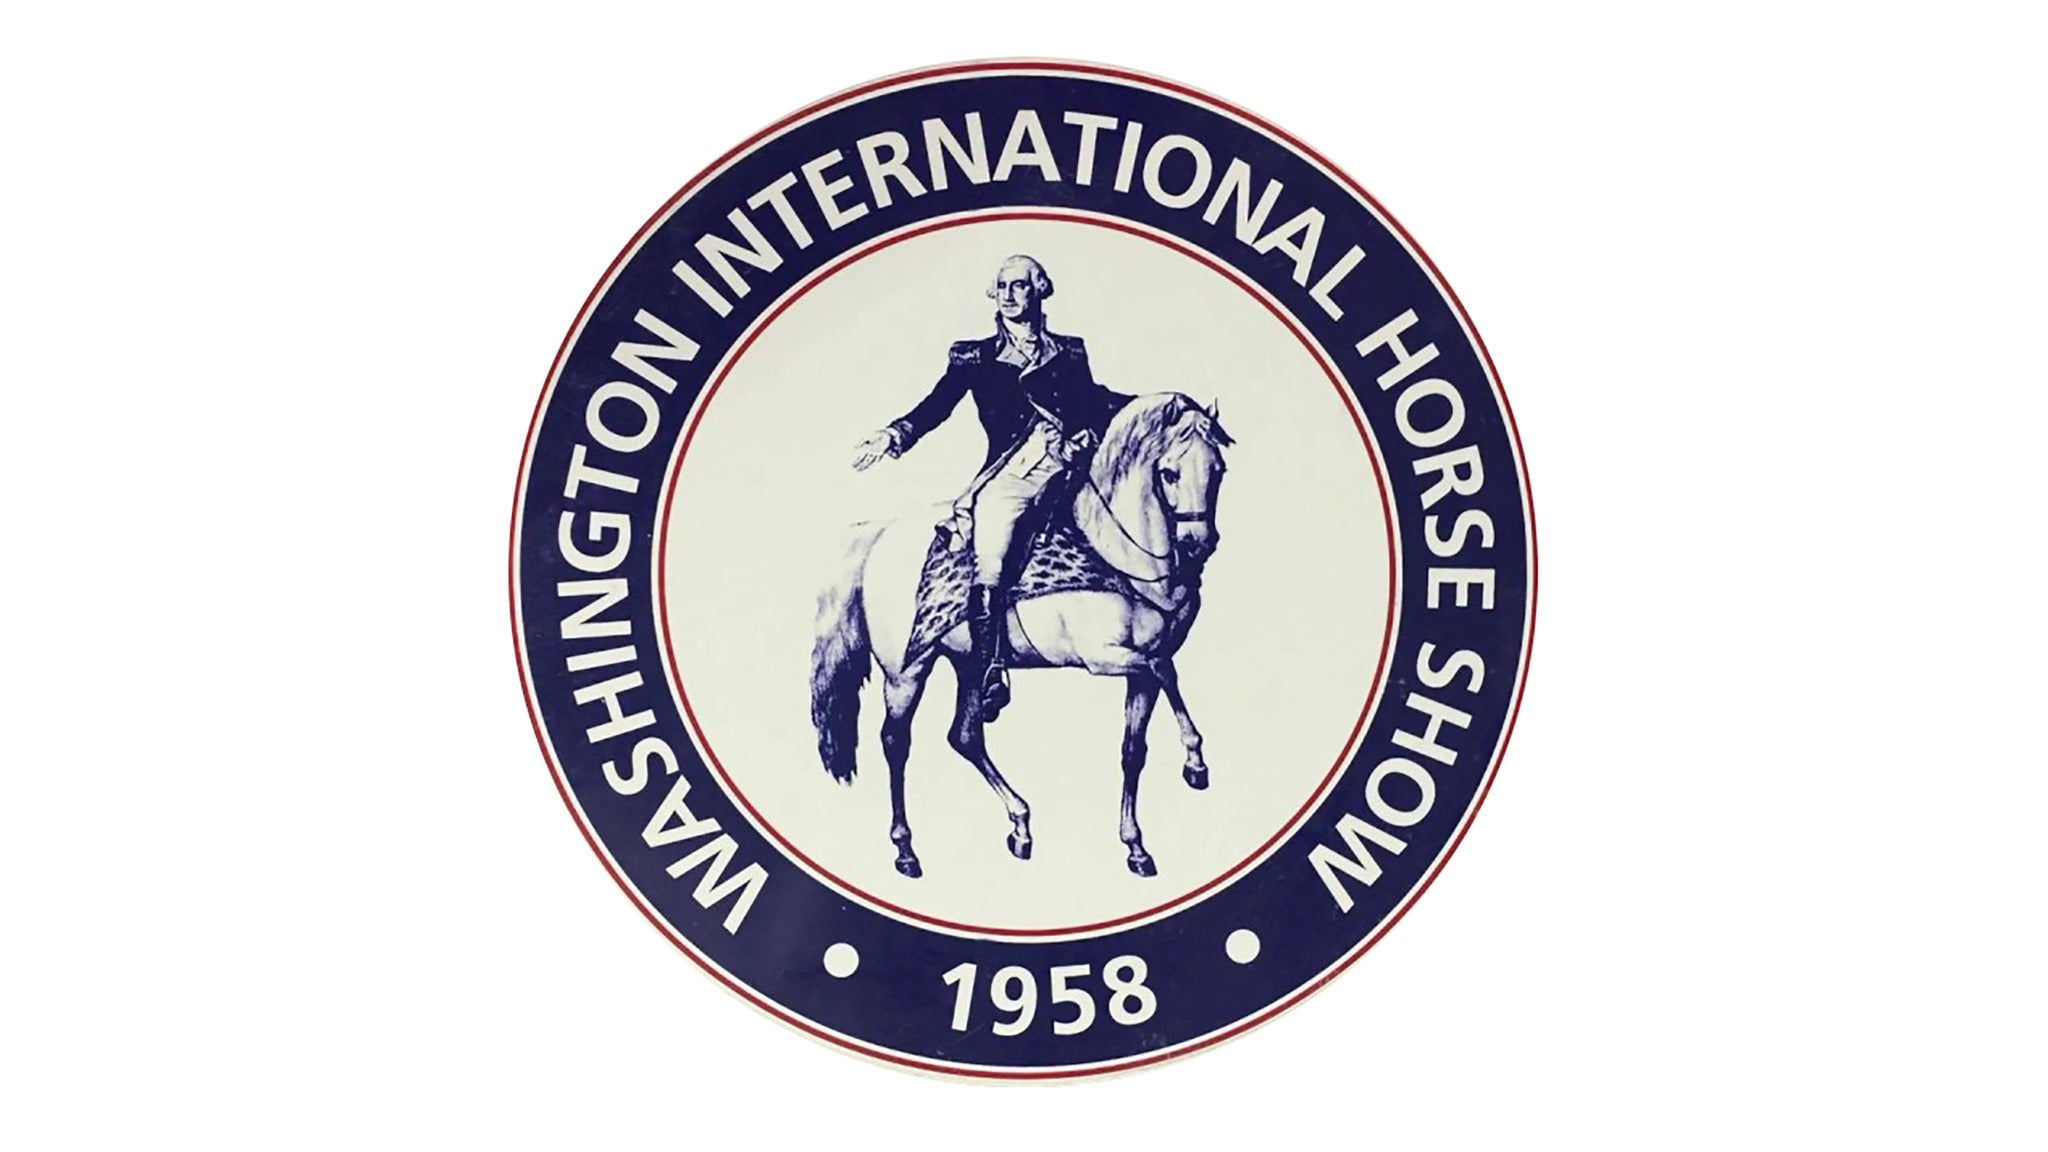 Washington International Horse Show : WIHS Pony Equitation